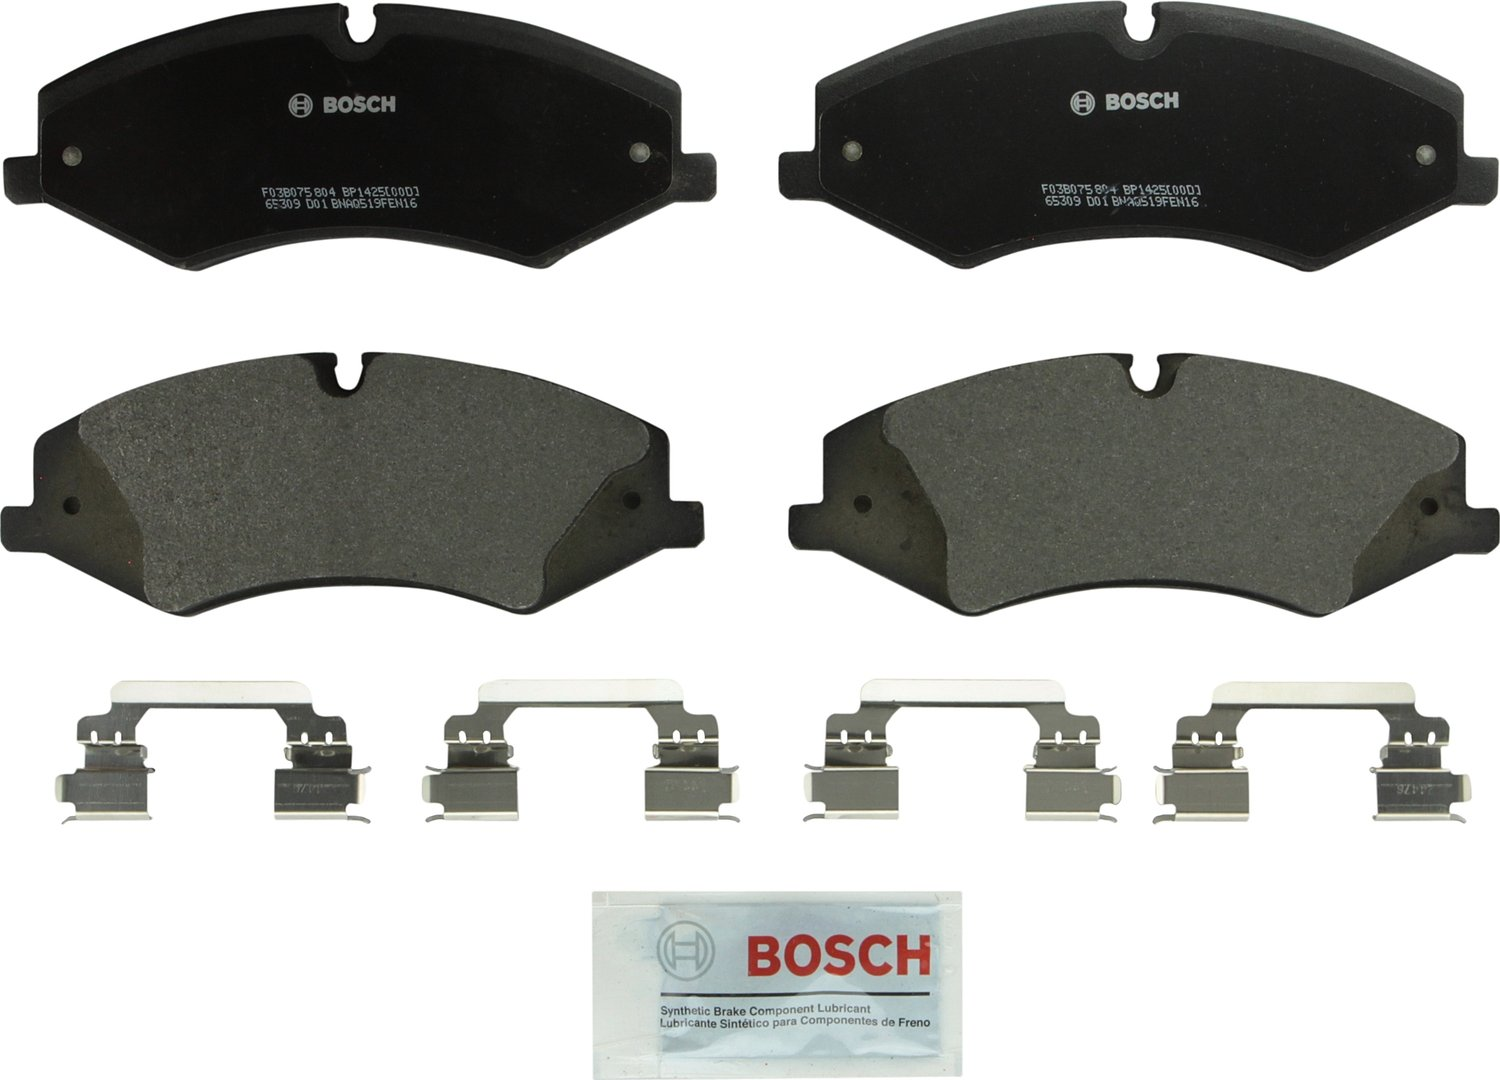 Bosch BP1425 QuietCast Premium Semi-Metallic Disc Brake Pad Set For Land Rover: 2017 Discovery, 2010-2016 LR4, 2010-2017 Range Rover, 2010-2017 Range Rover Sport; Front